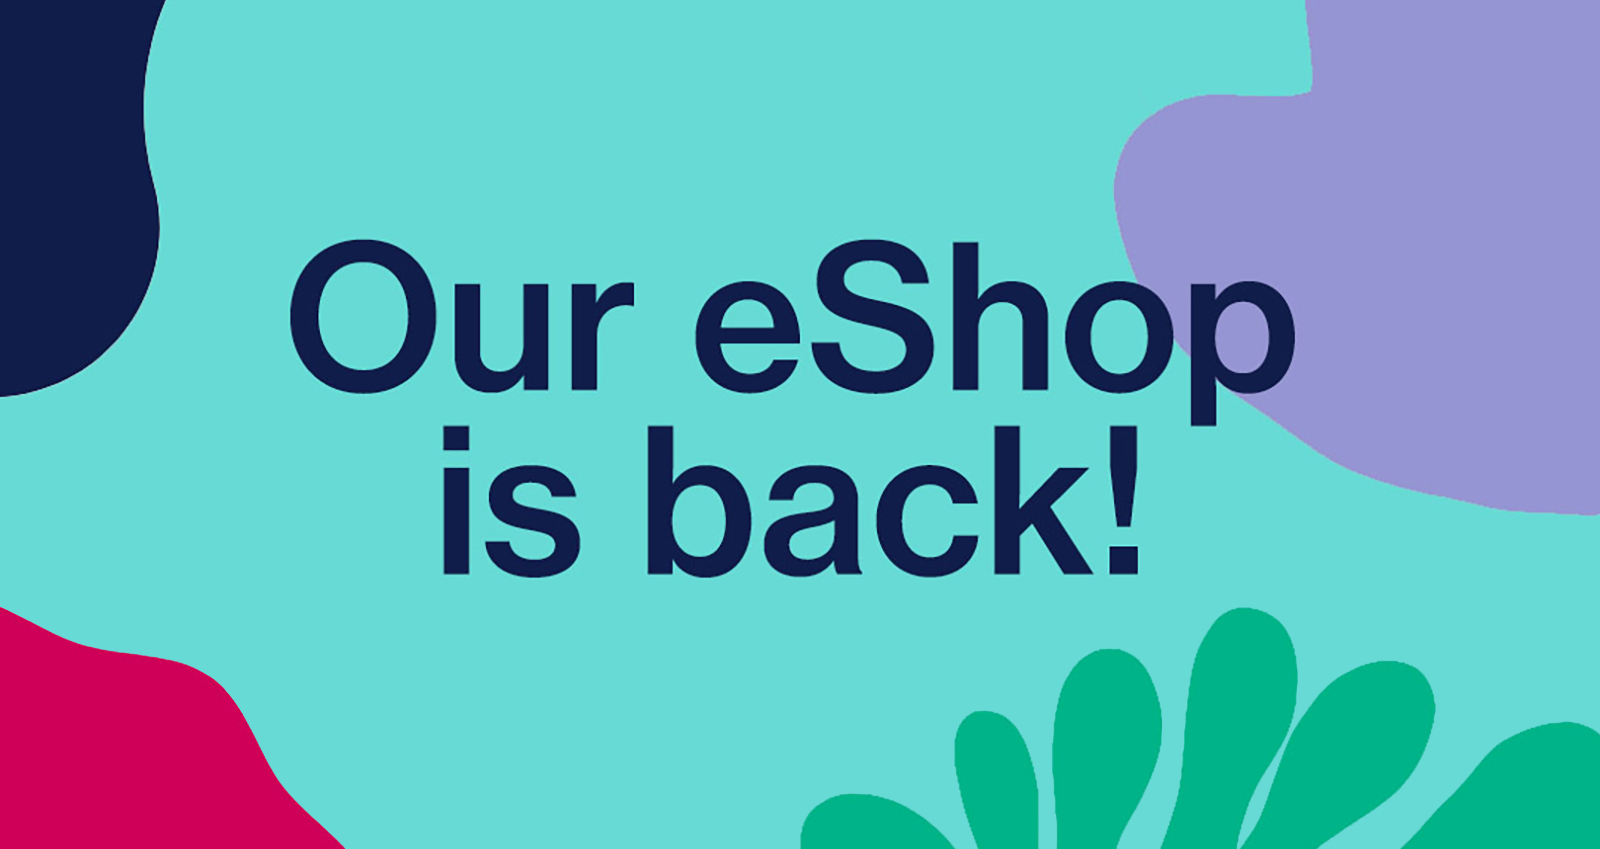 Our eShop is back! Click the links in our menu to see our range of items